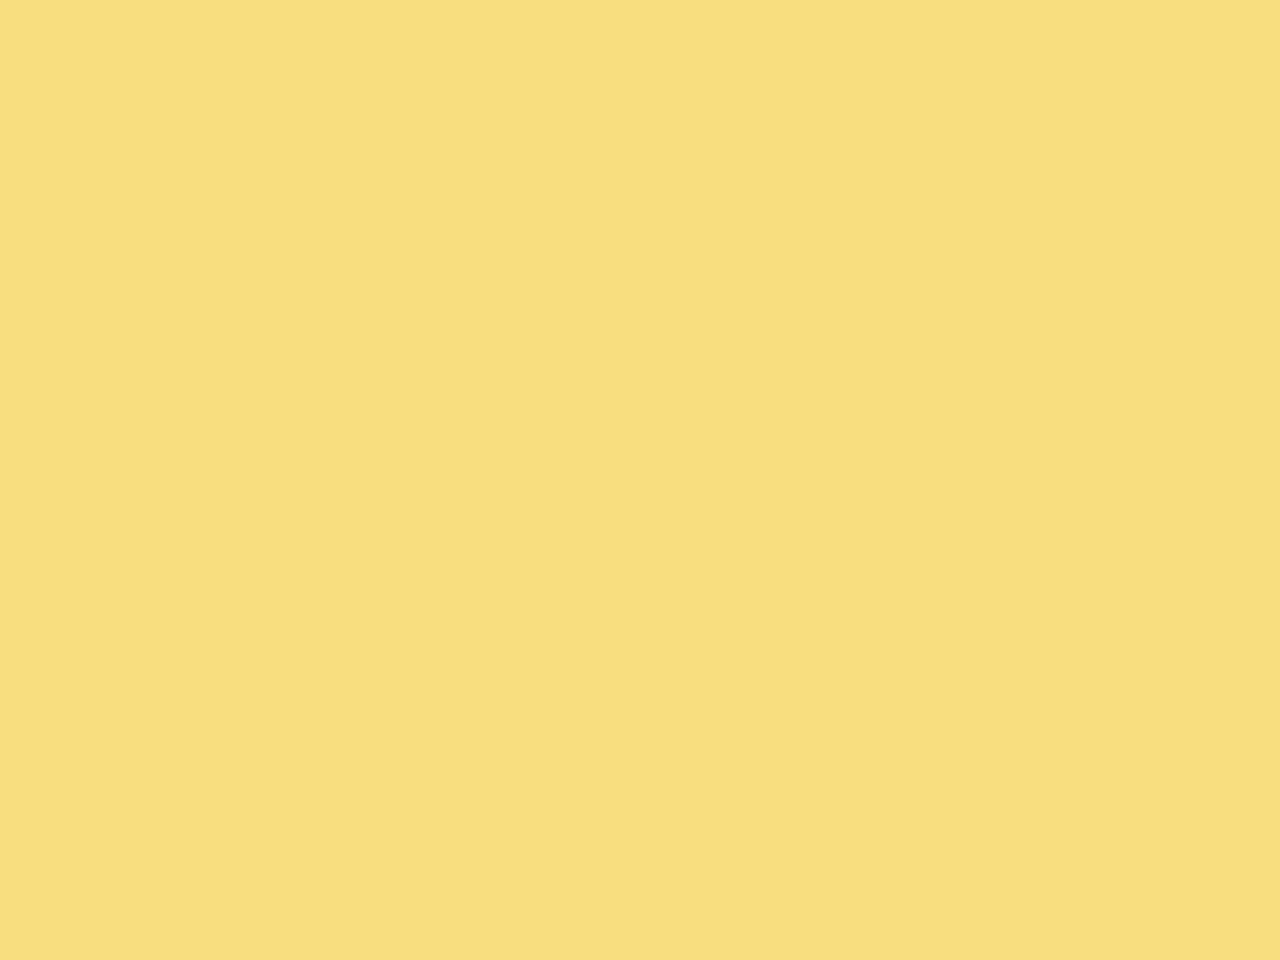 1280x960 Mellow Yellow Solid Color Background